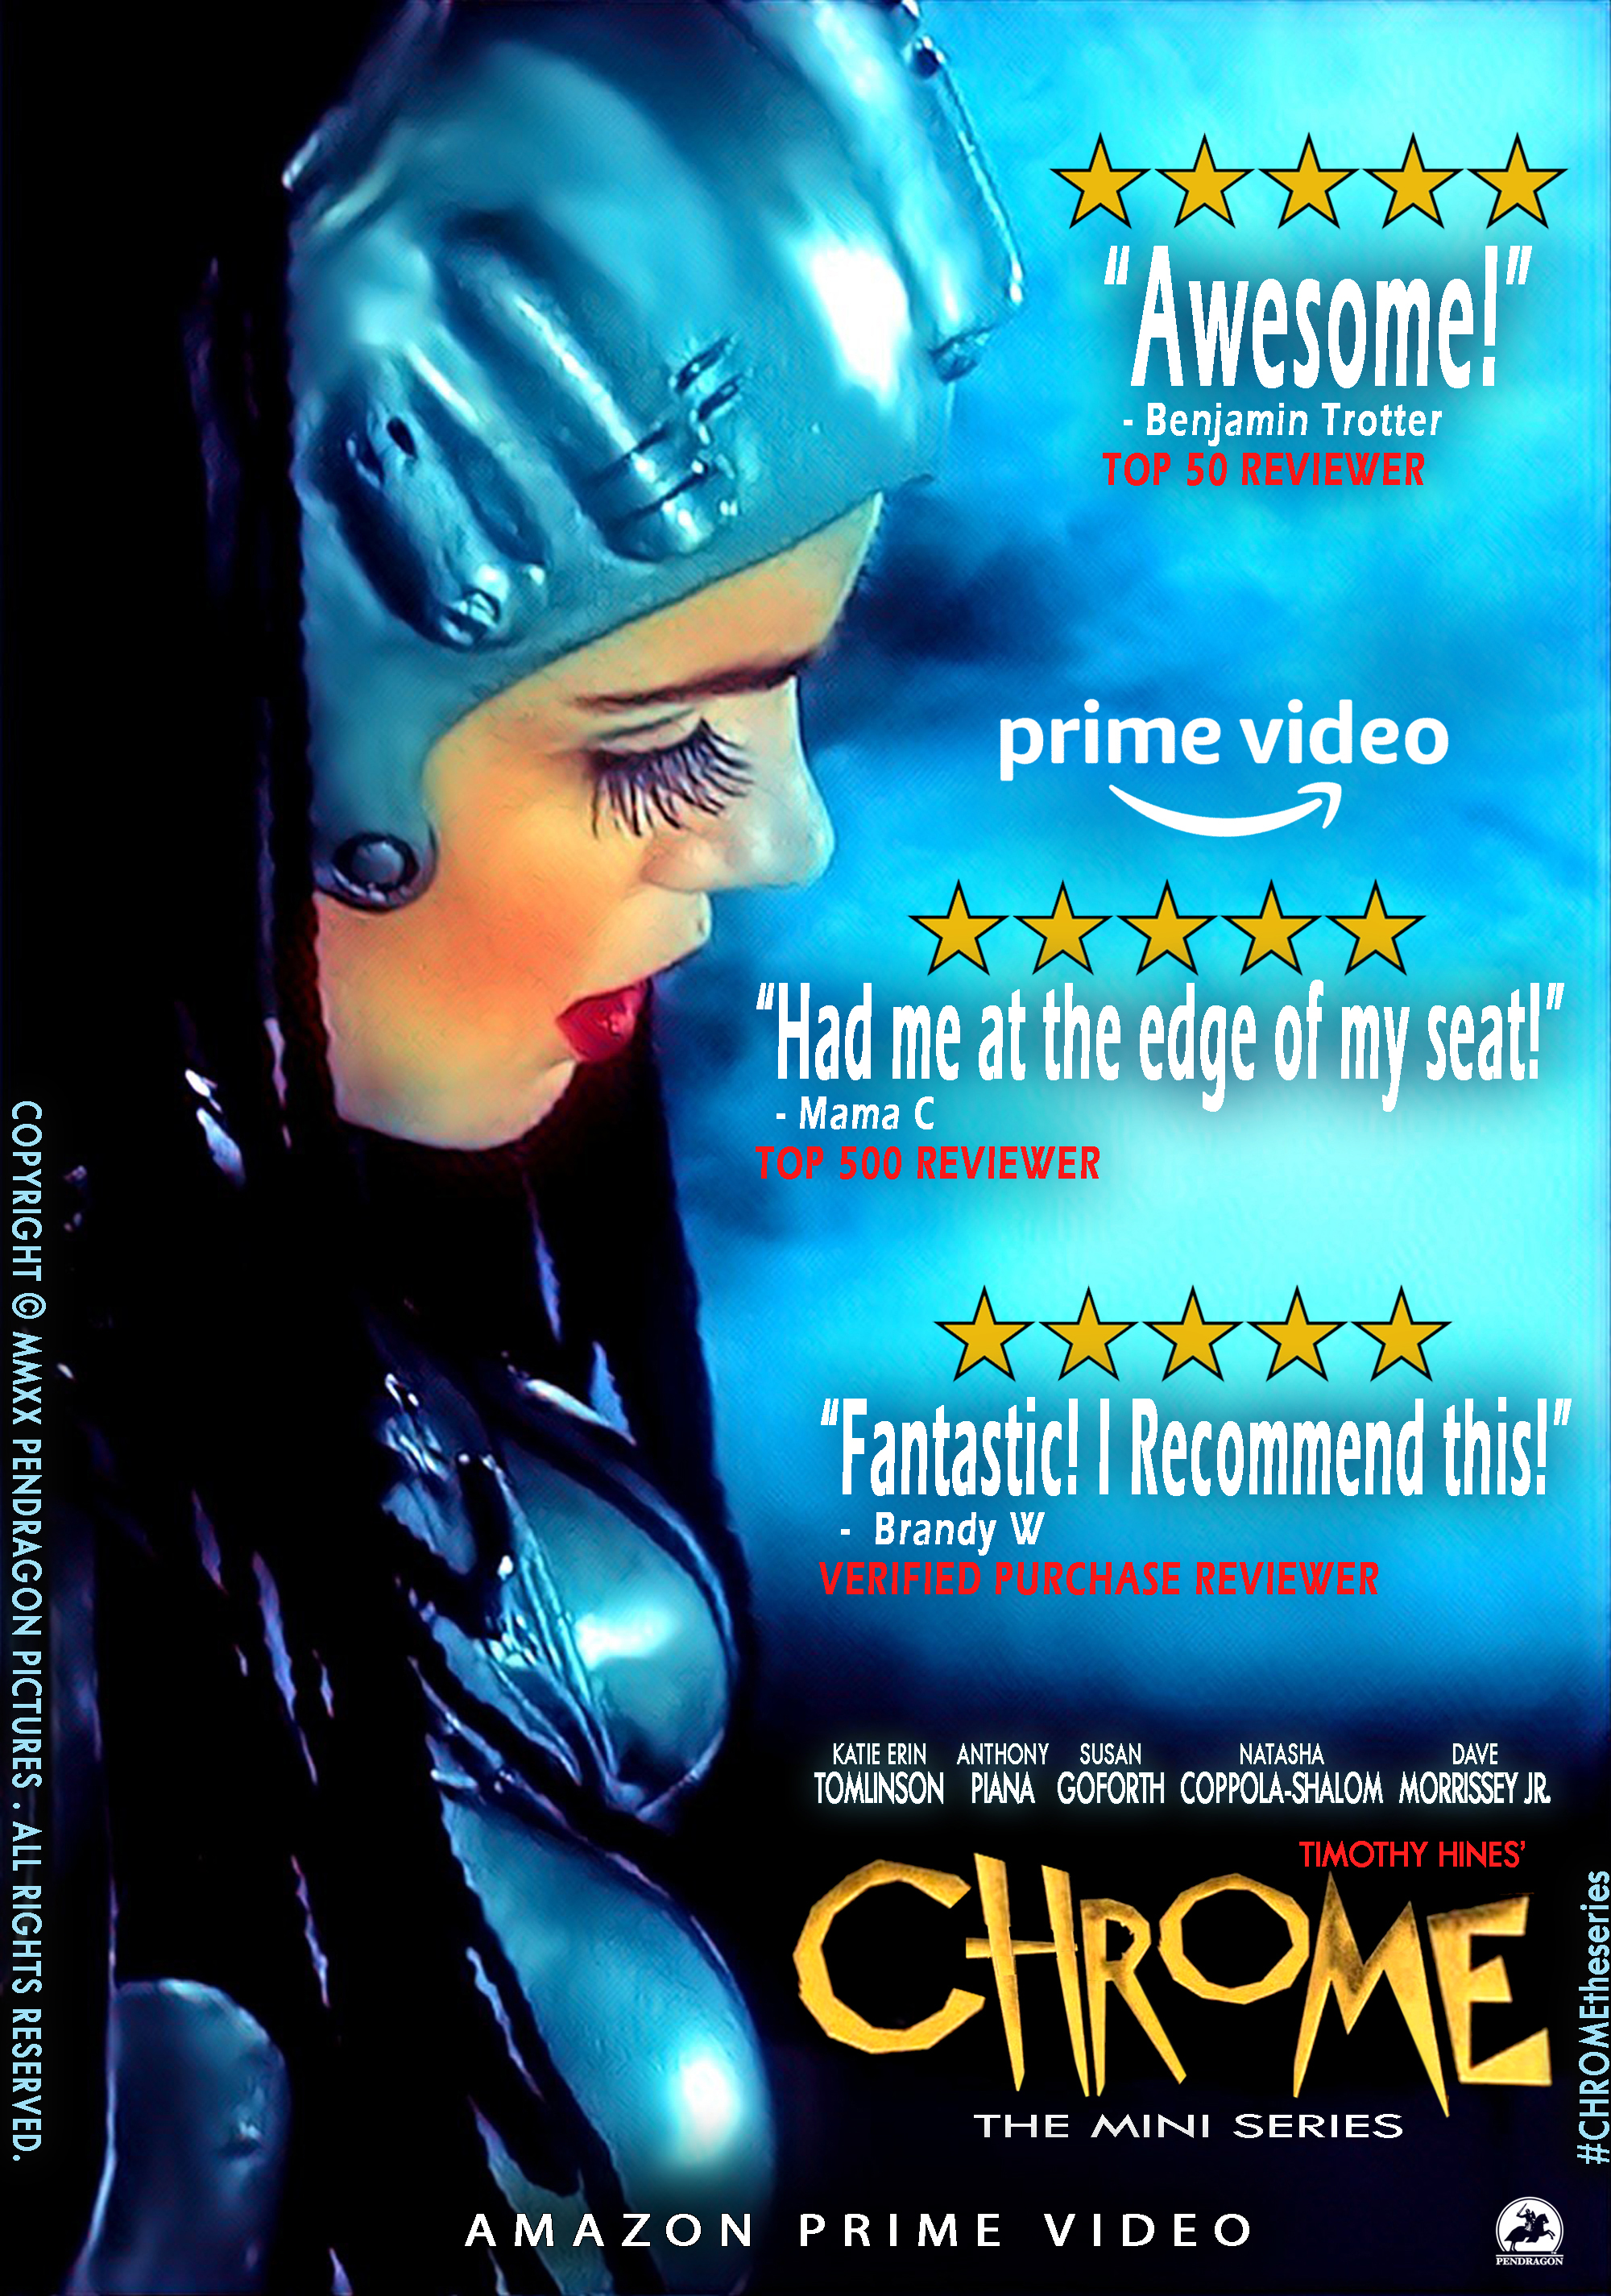 Chrome The Series is Blowing up the Internet, Garnering Praise and Raves from Viewers